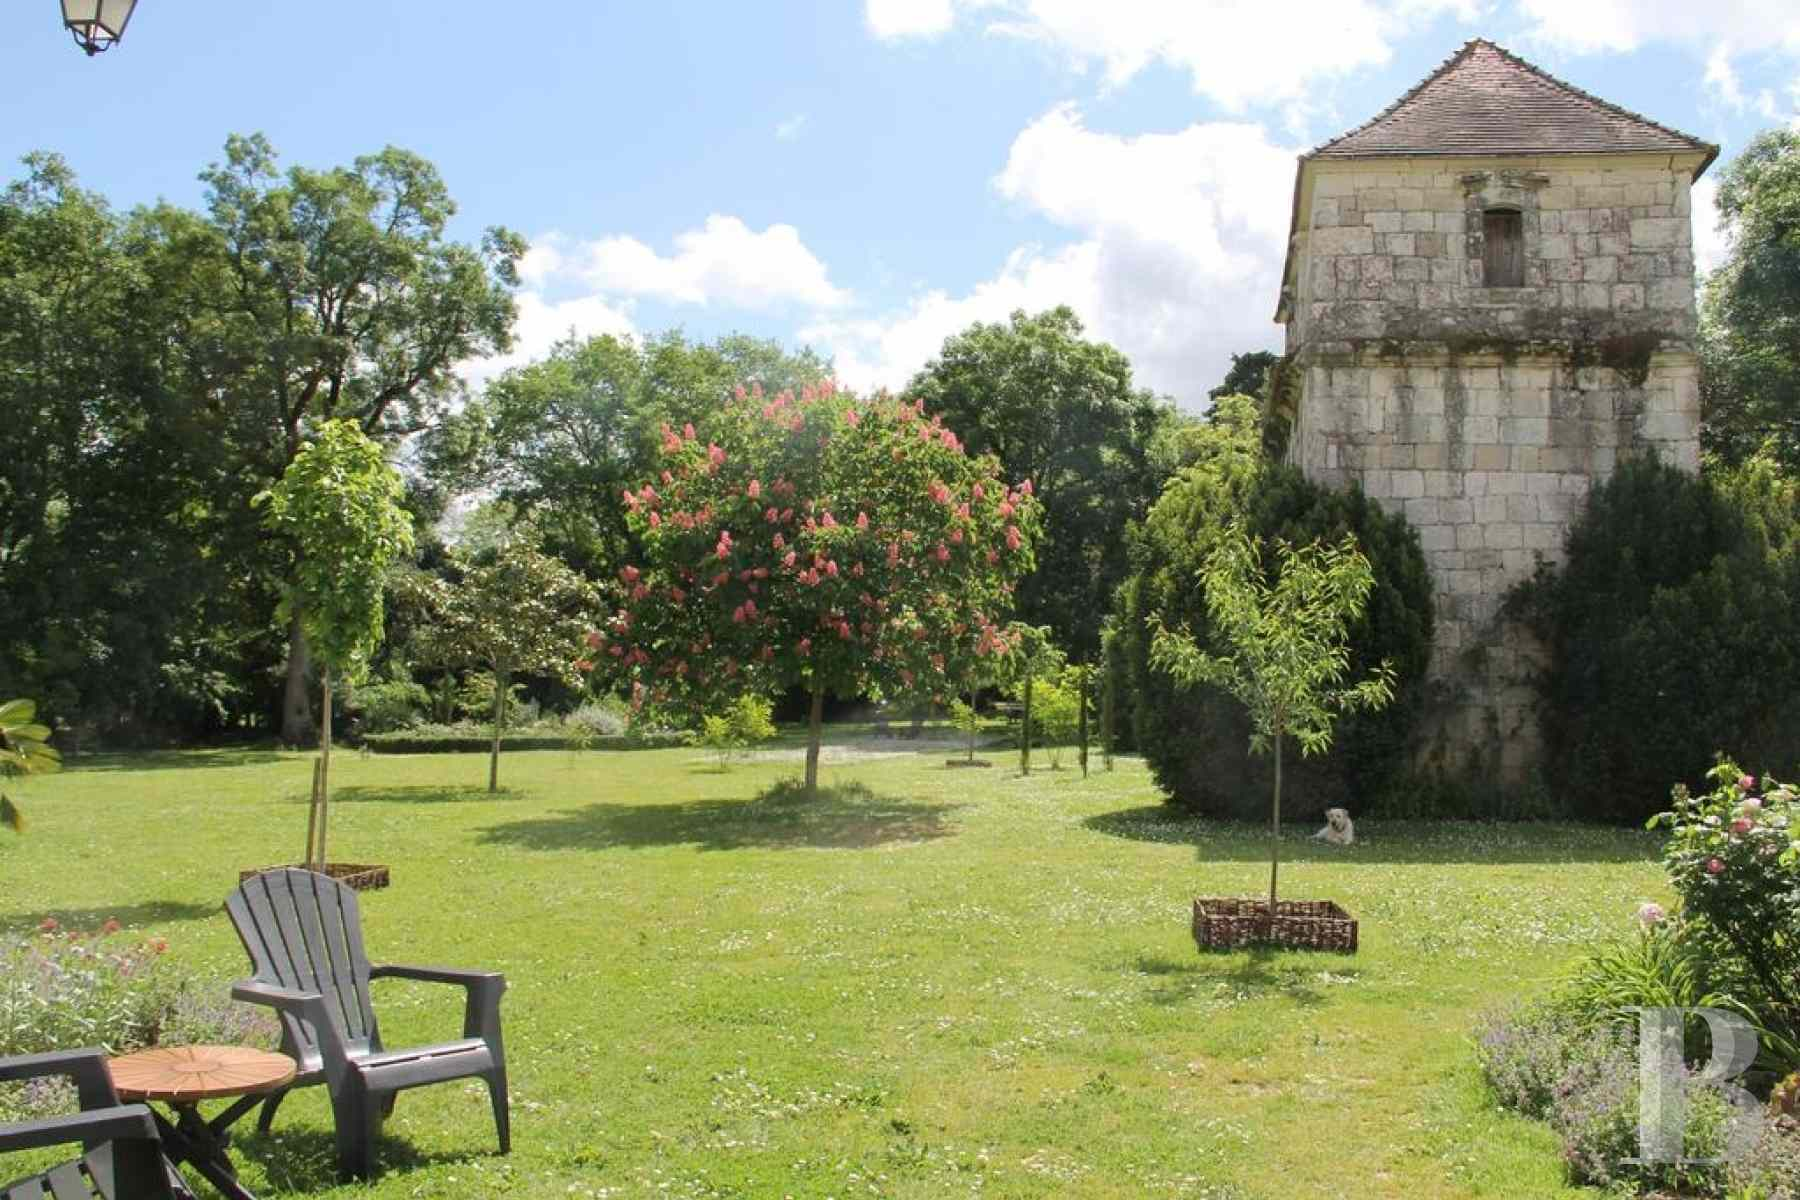 property for sale France aquitaine property 18th - 25 zoom